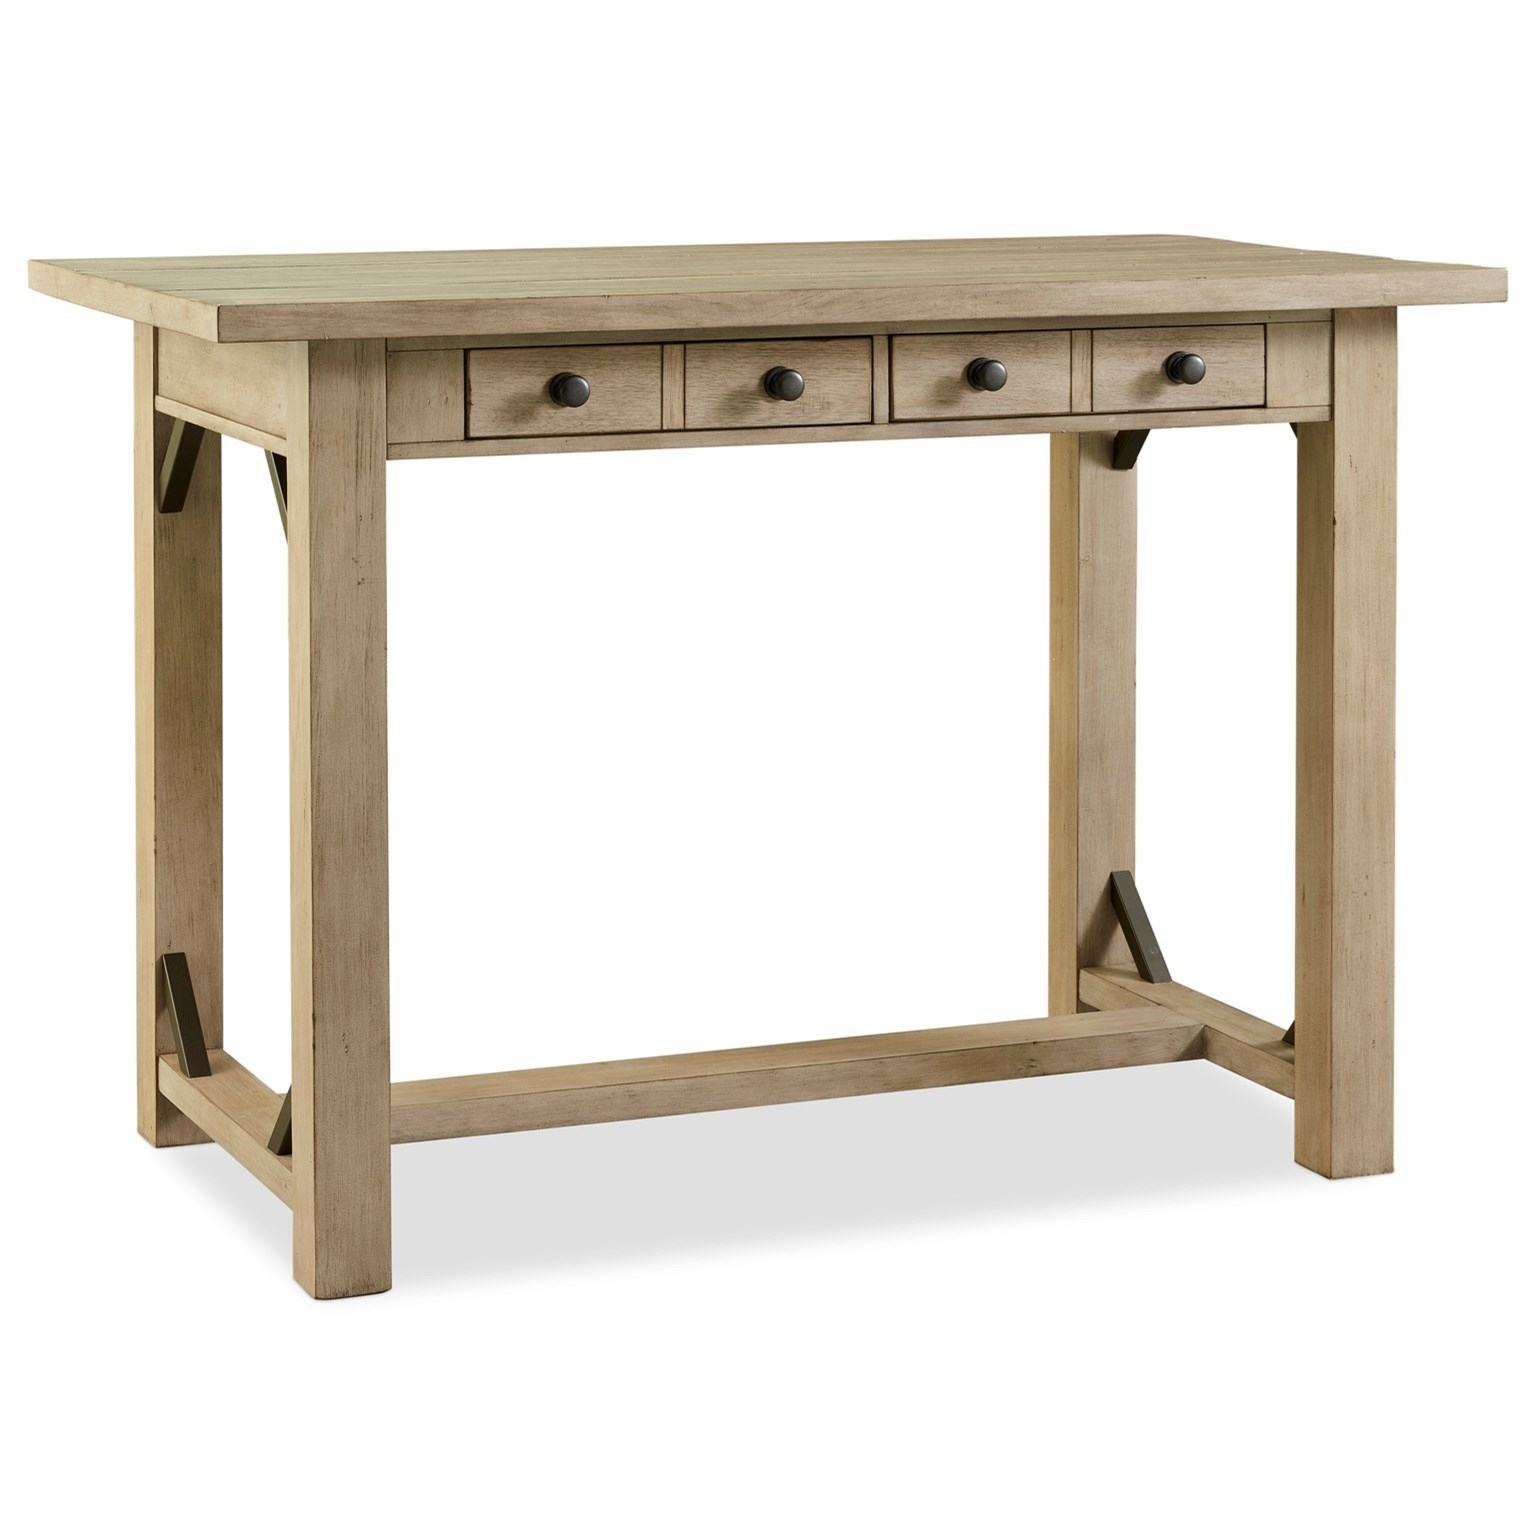 Charmant Hideaway Transitional Counter Height Table By Legends Furniture At  Furniture Superstore   Rochester, MN